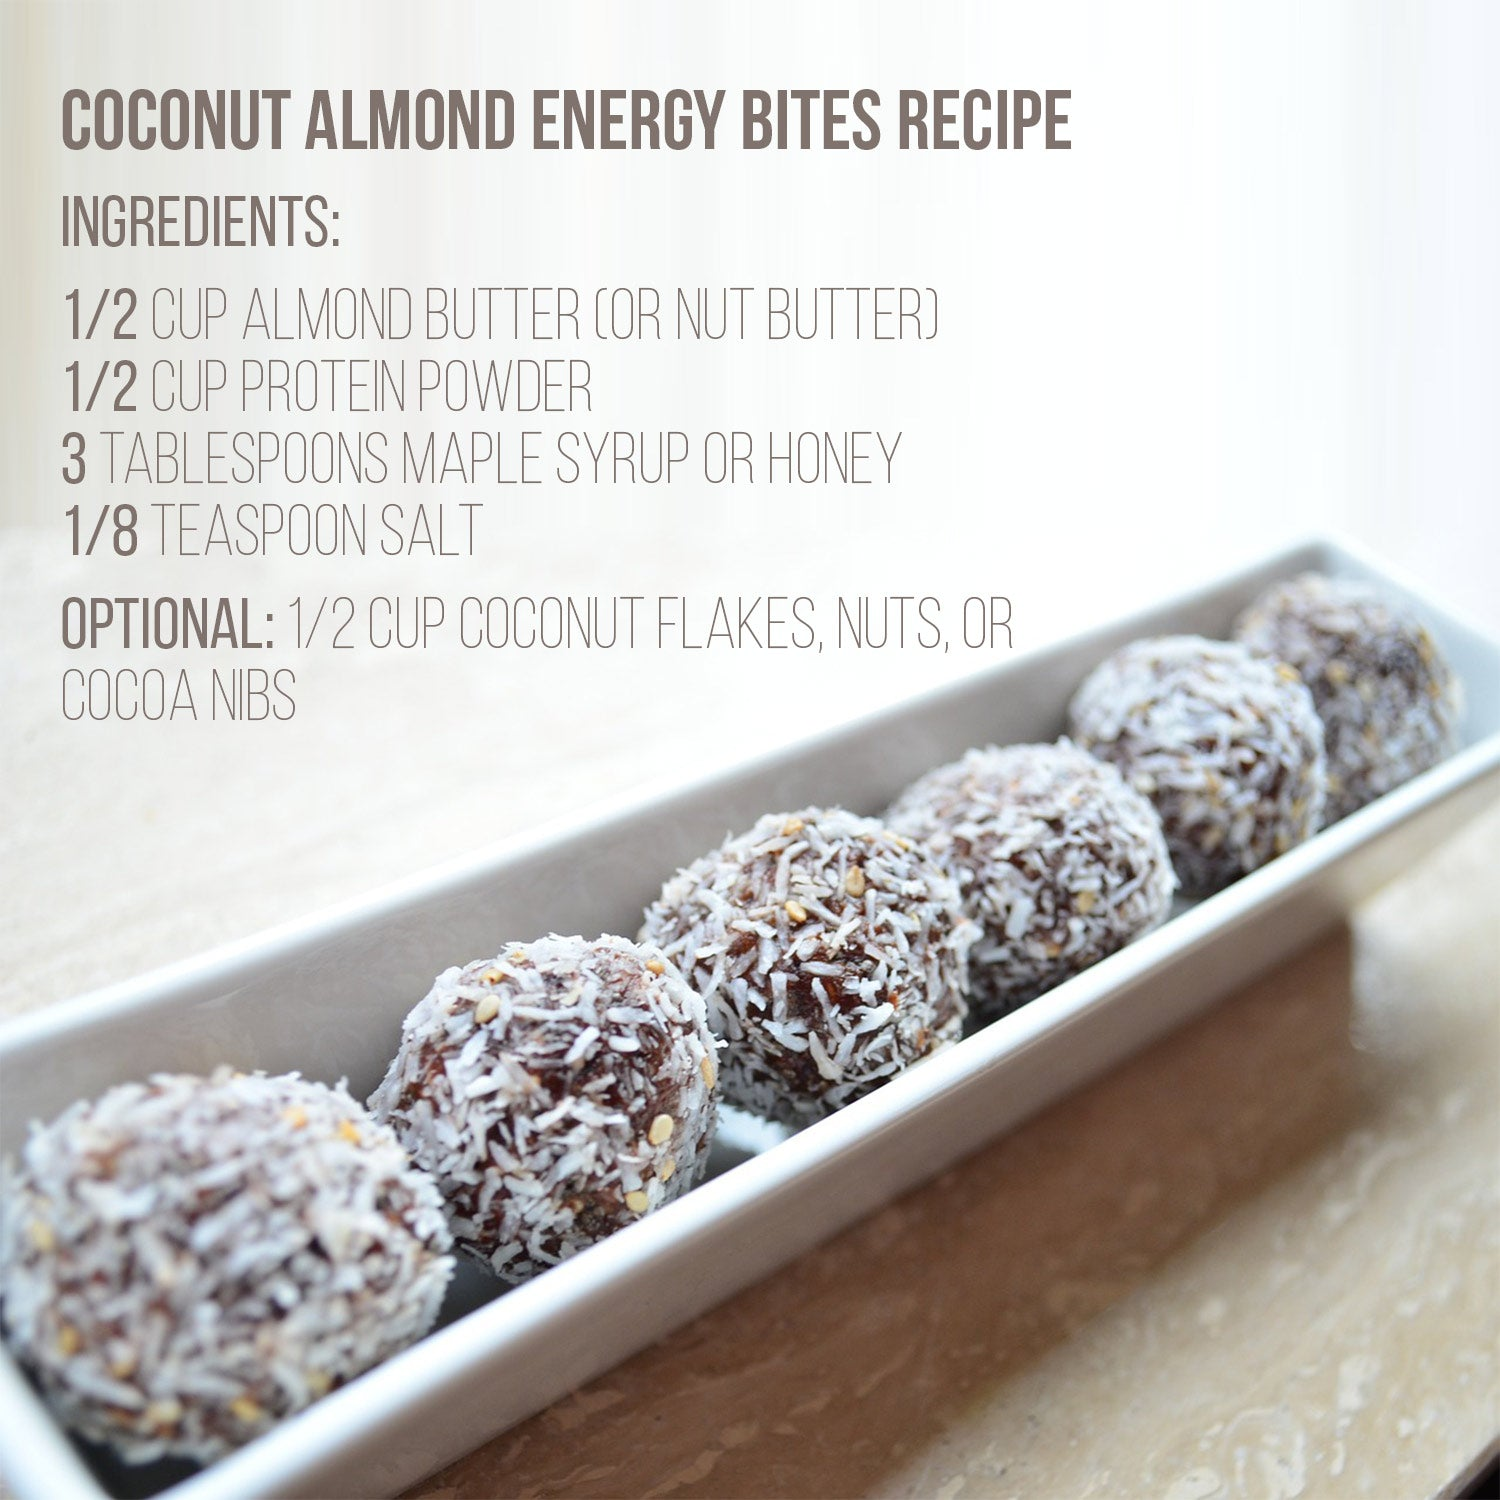 COCONUT ALMOND ENERGY BITES RECIPE